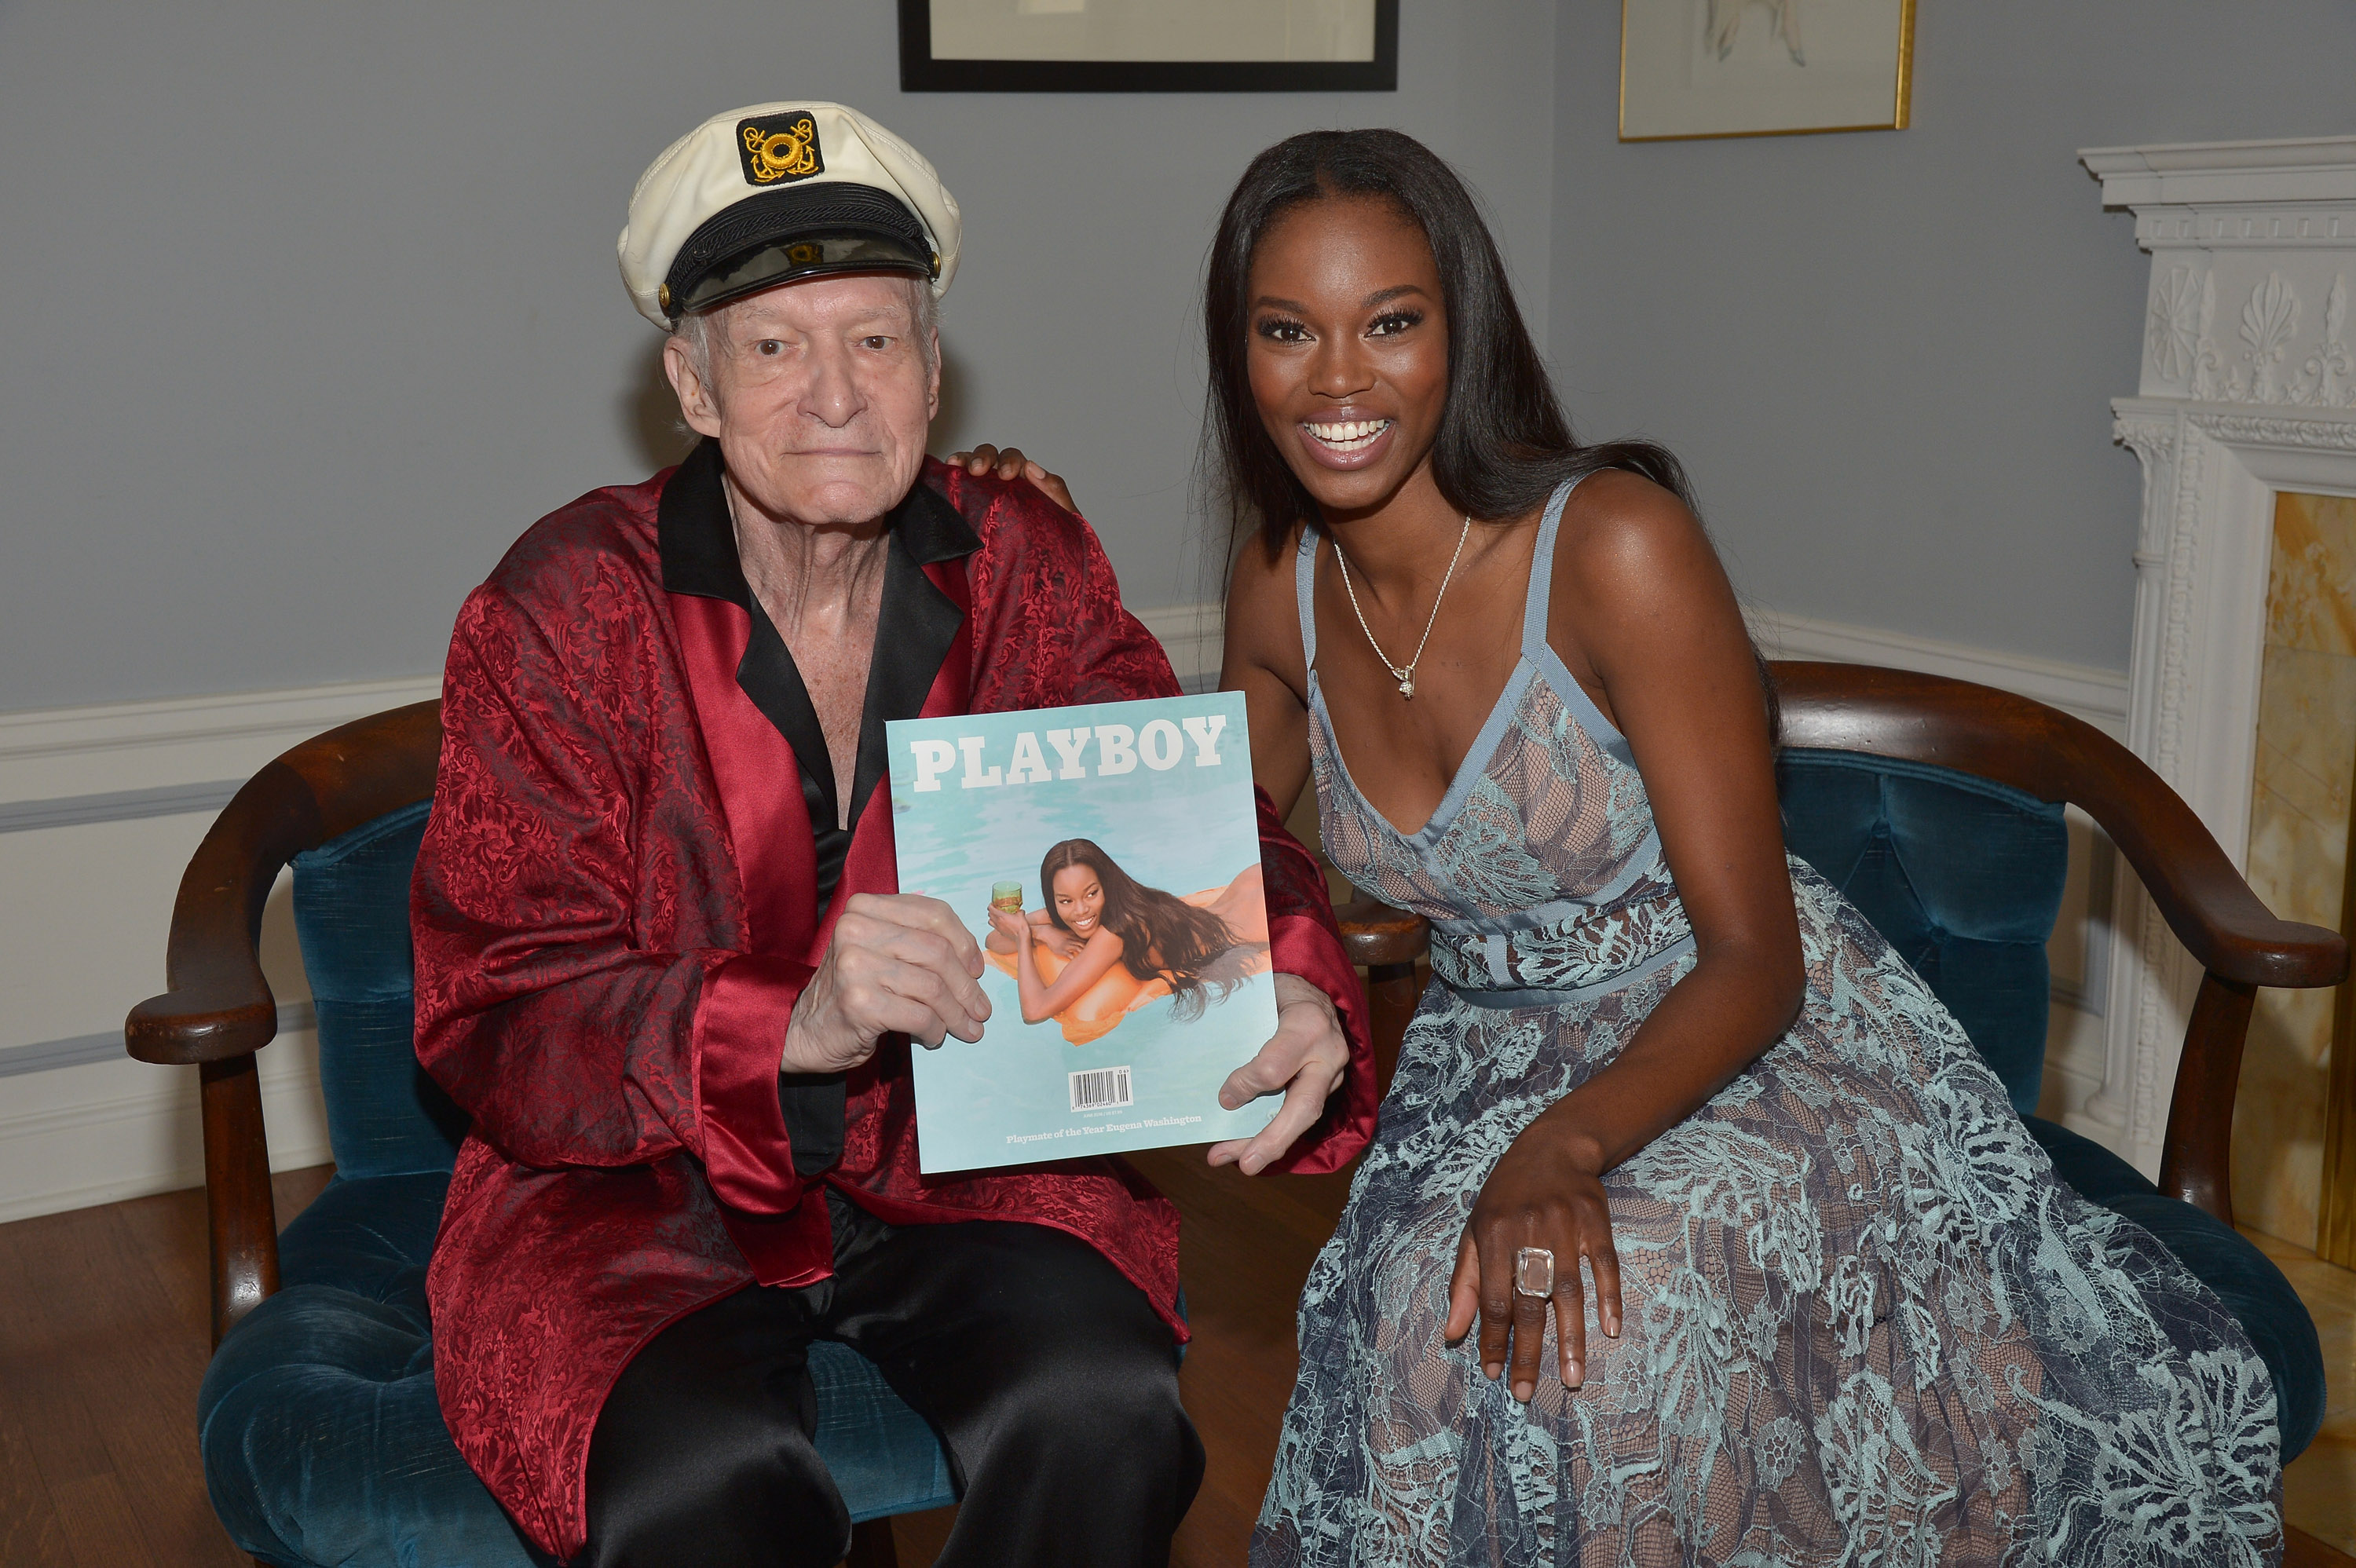 LOS ANGELES, CA - MAY 11: Playboy Founder and Editor-In-Chief Hugh M. Hefner poses with 2016 Playmate of the Year Eugena Washington at Playboy's 2016 Playmate of the Year Announcement at the Playboy Mansion on May 11, 2016 in Los Angeles, California. (Photo by Charley Gallay/Getty Images for Playboy)